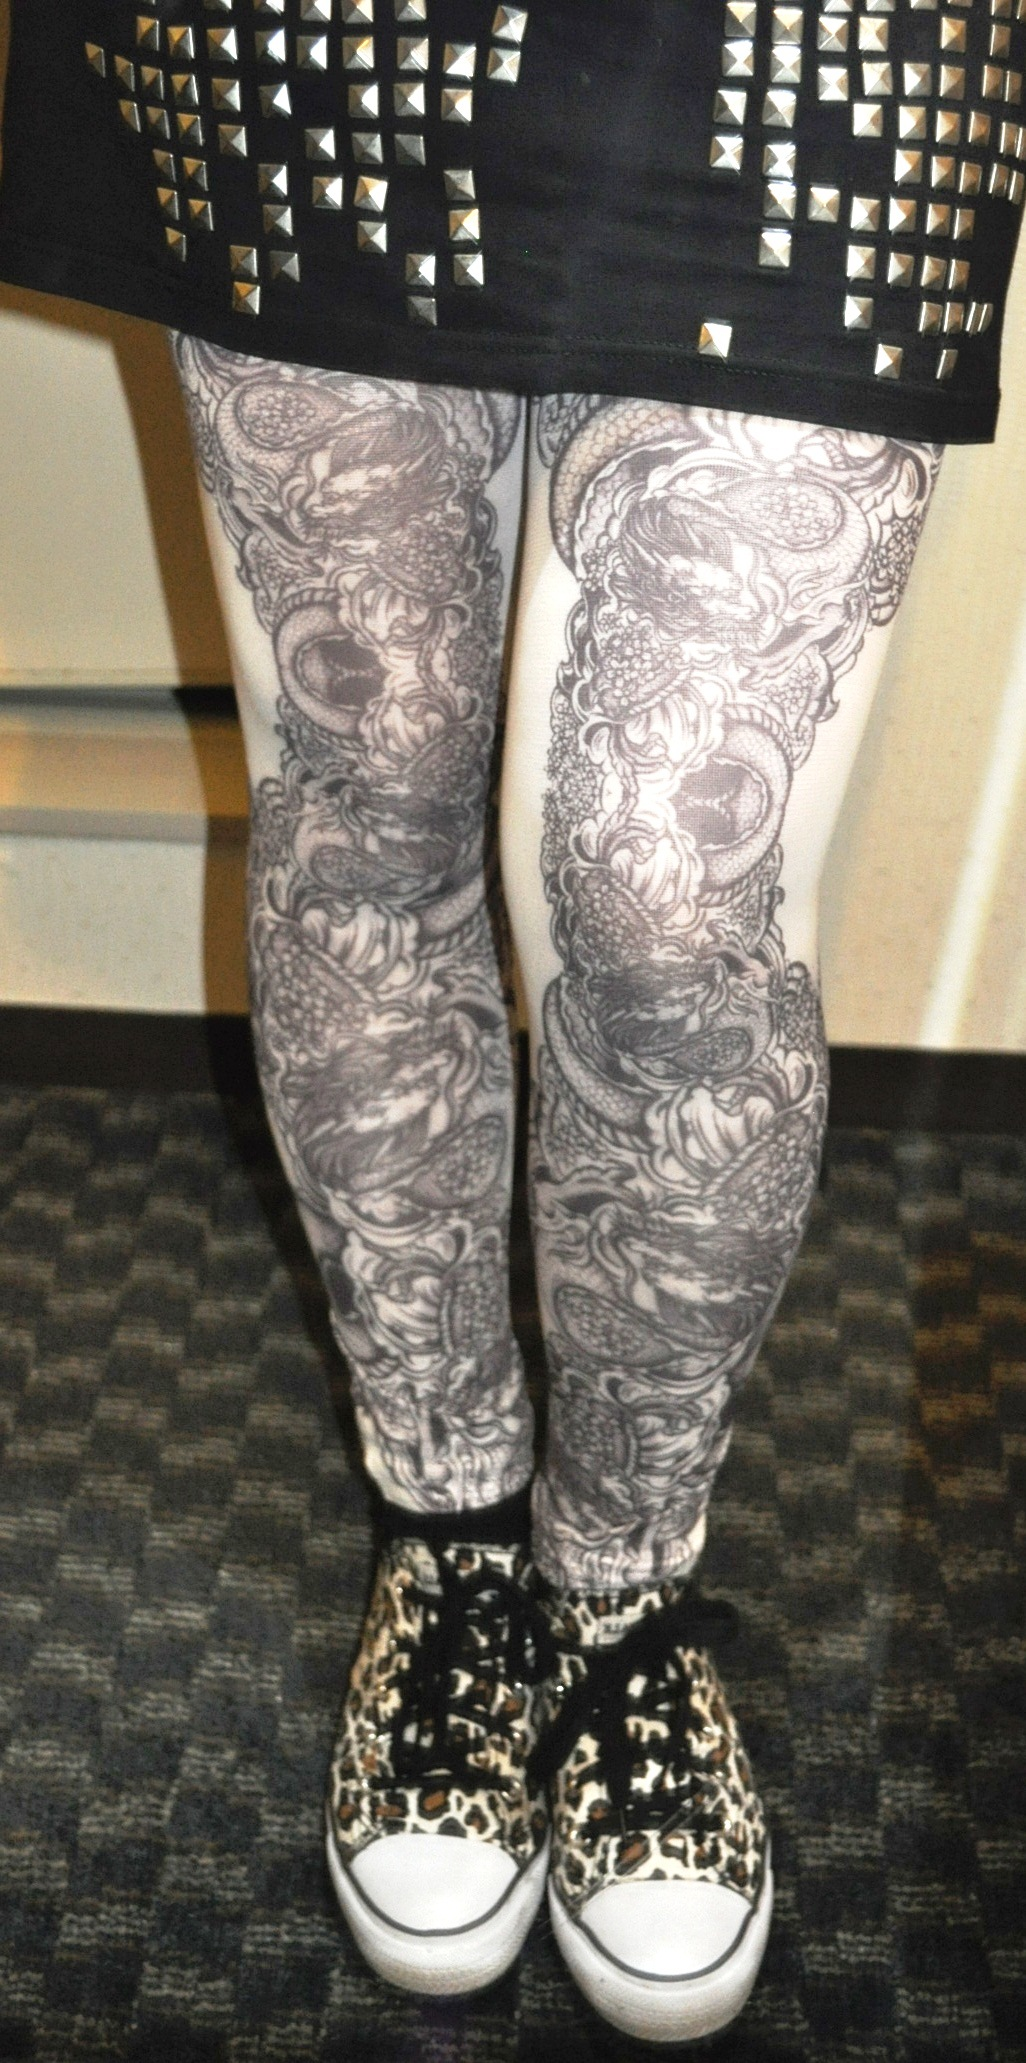 tattoo tights from Shibuya 109